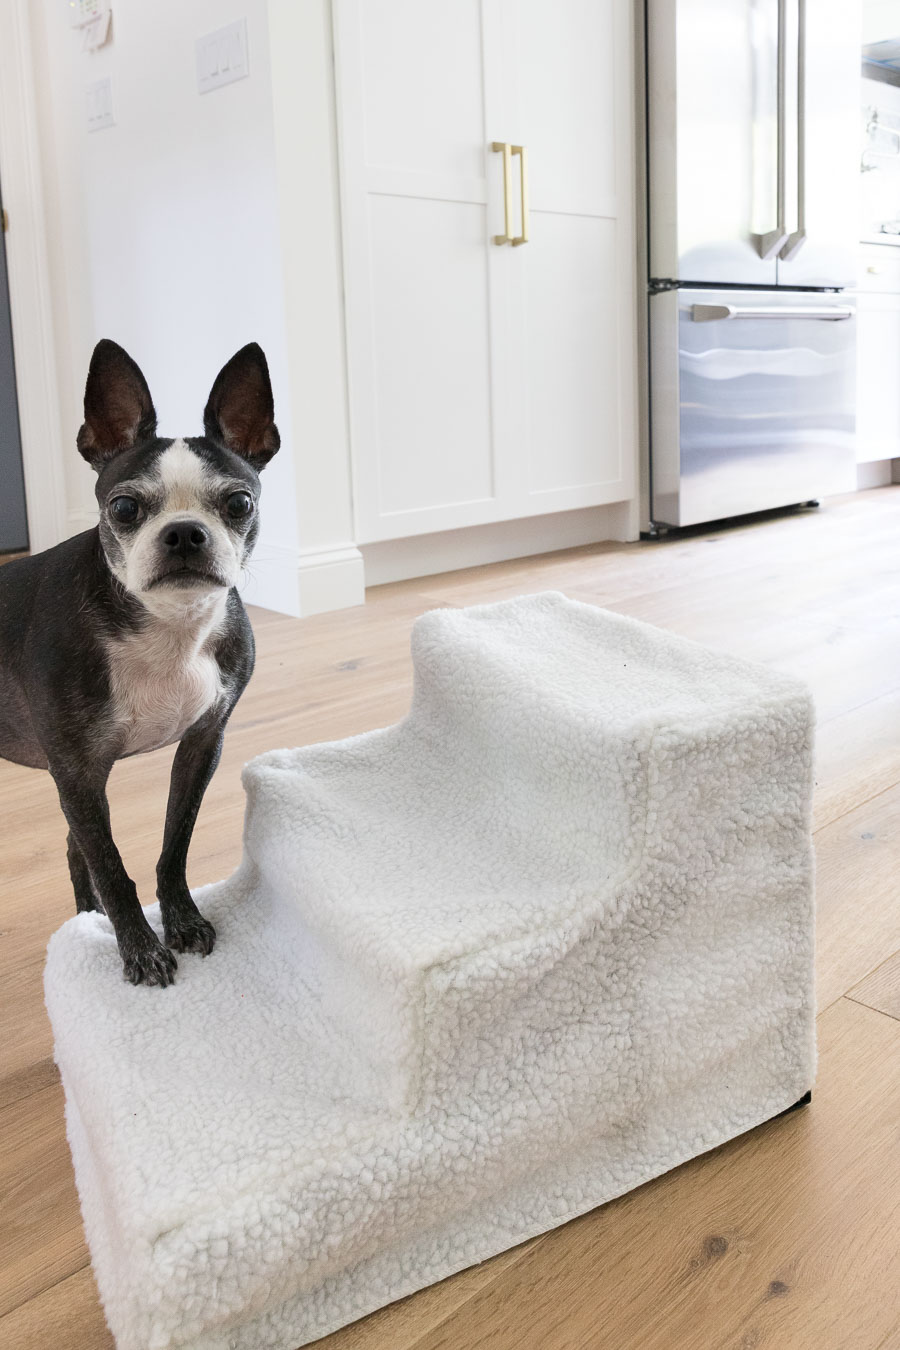 Fleece covered dog steps to help dogs get up on things without jumping!